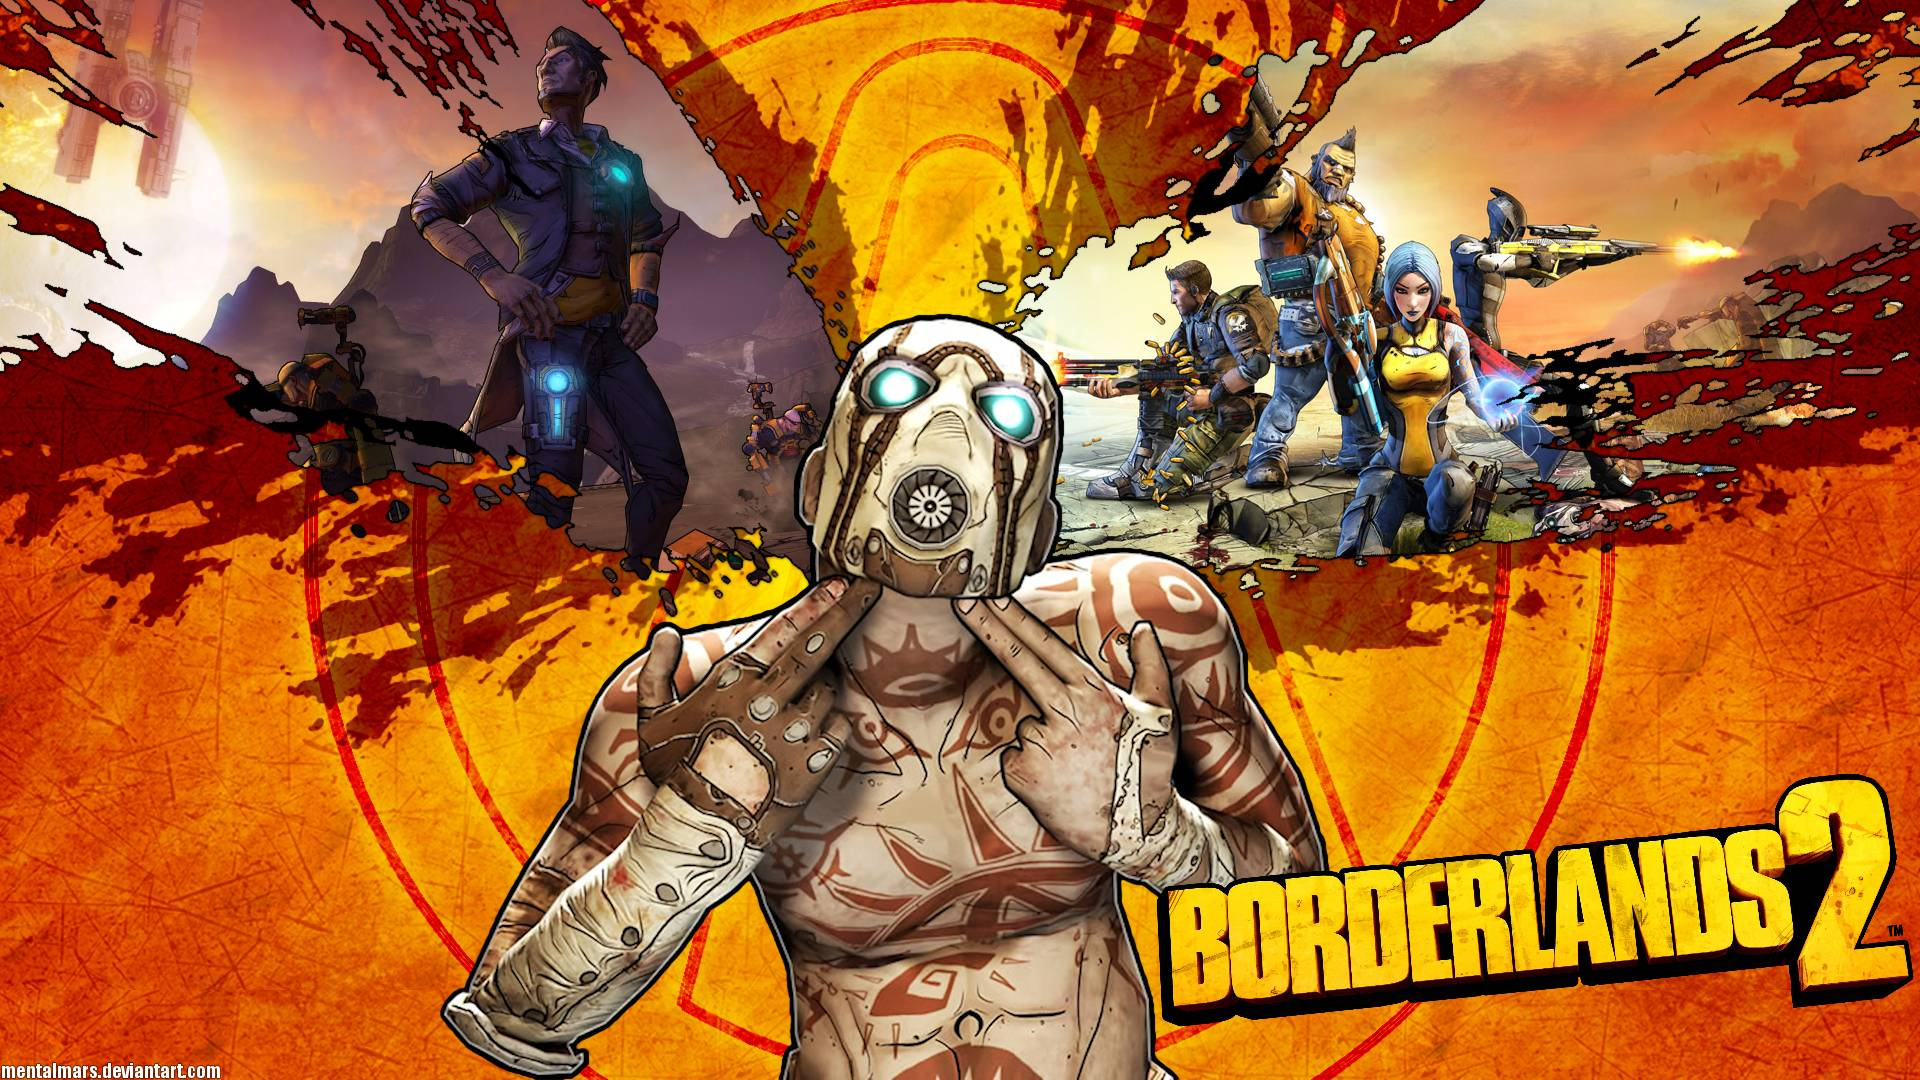 borderlands 2 desktop backgrounds - wallpaper cave